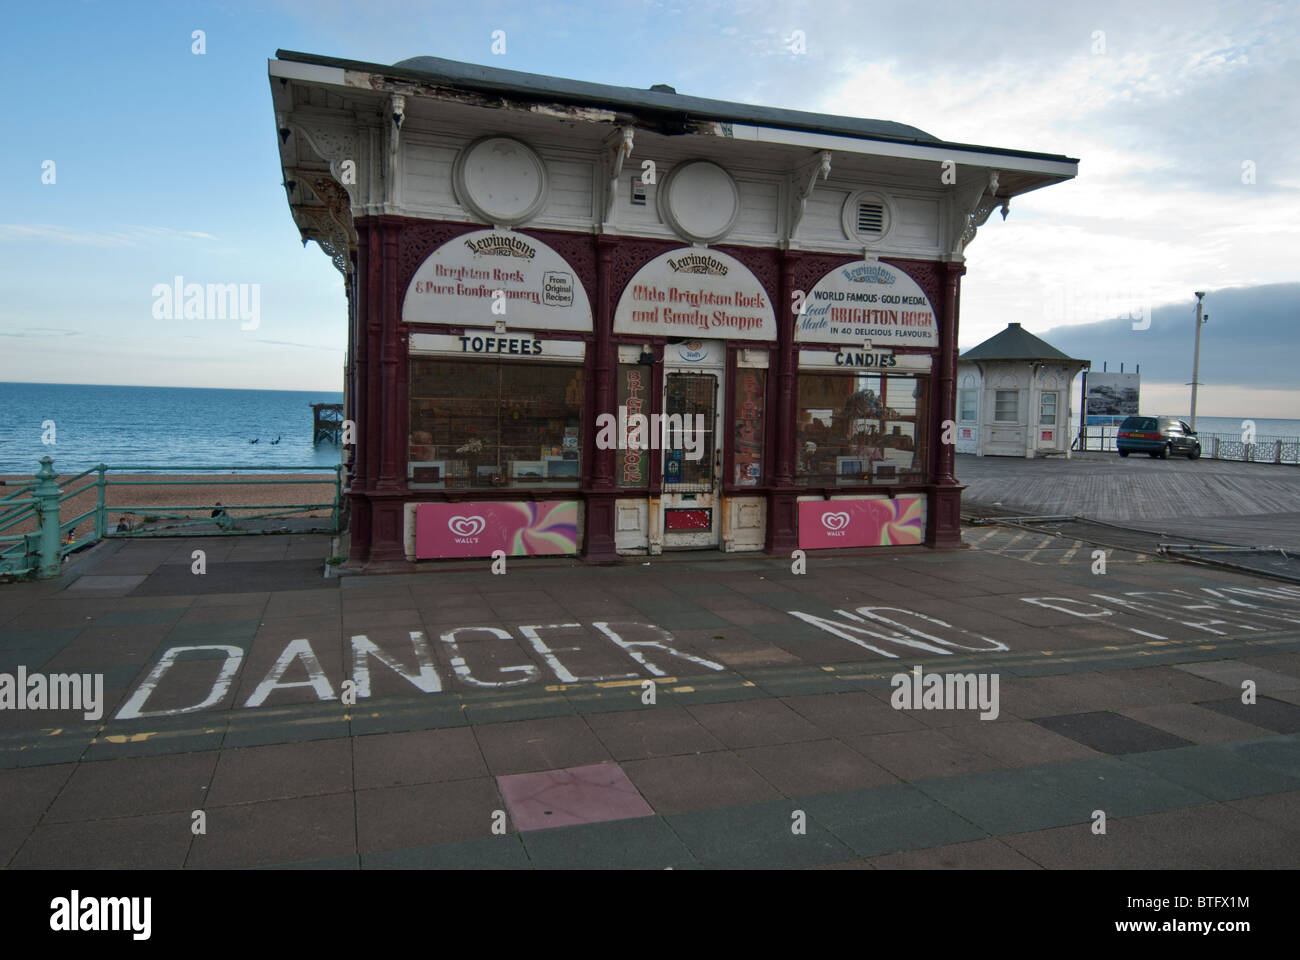 'Lewingtons 1827 old Brighton Rock and Candy shoppe' shop on Brighton Sea front, esplanade. East Sussex - Stock Image